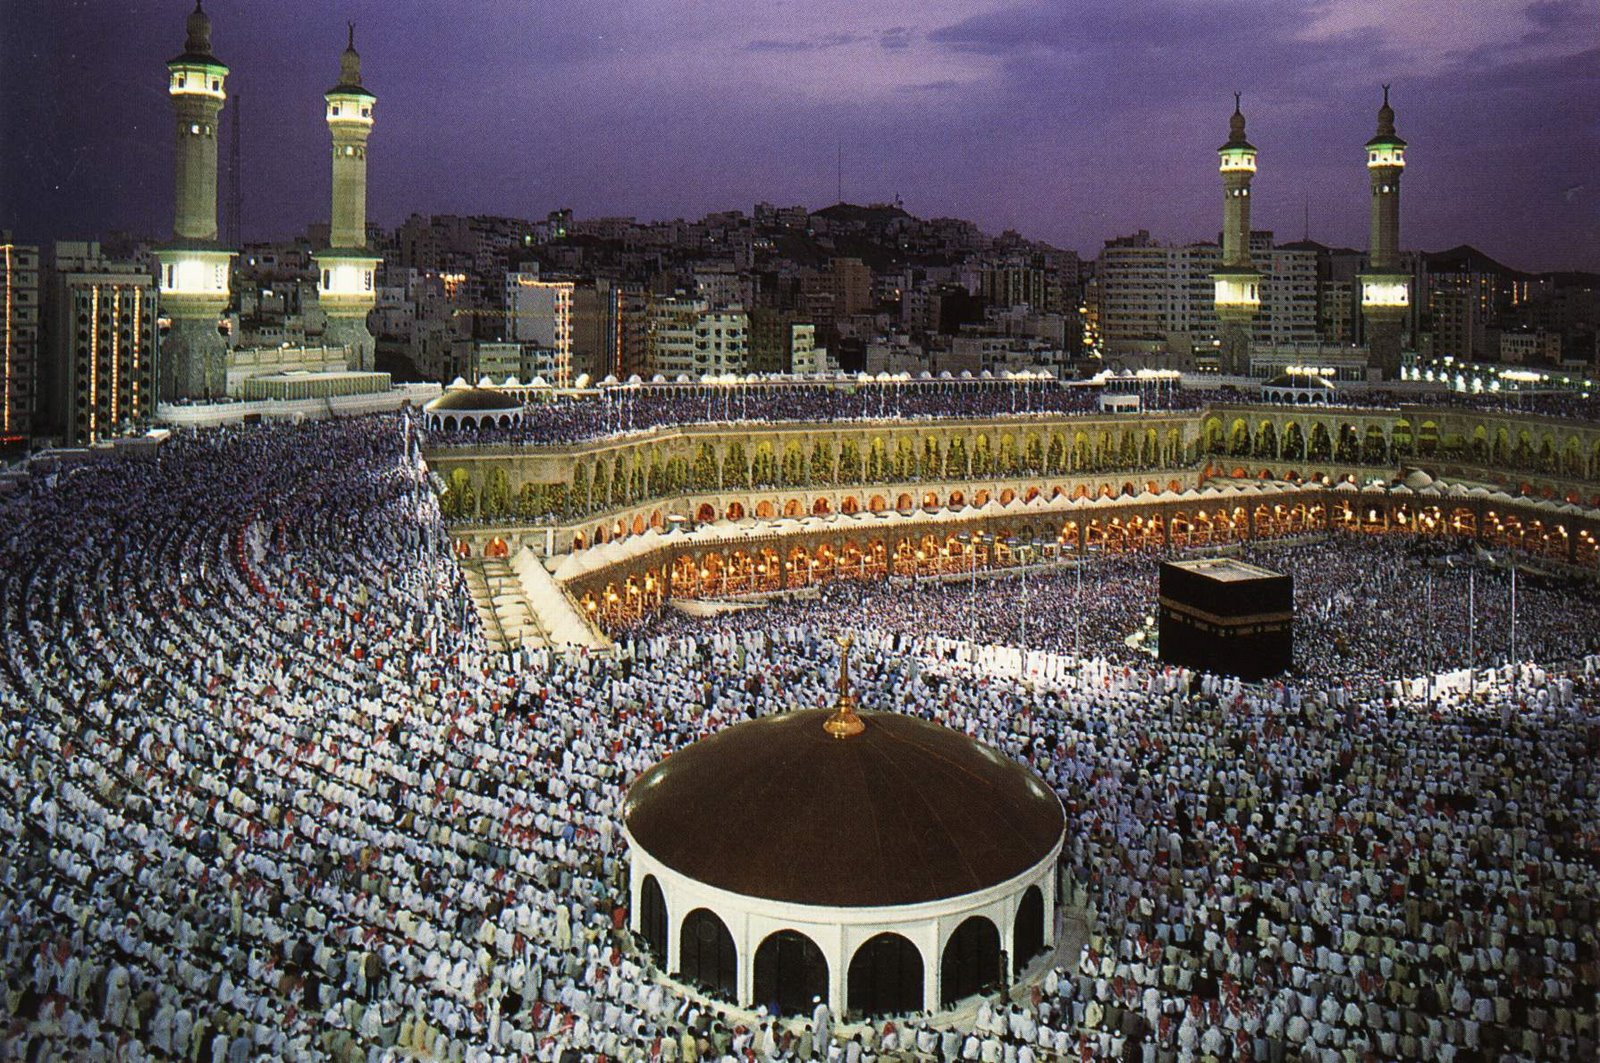 hajj guide book pdf Archives - Abu Khadeejah : أبو خديجة